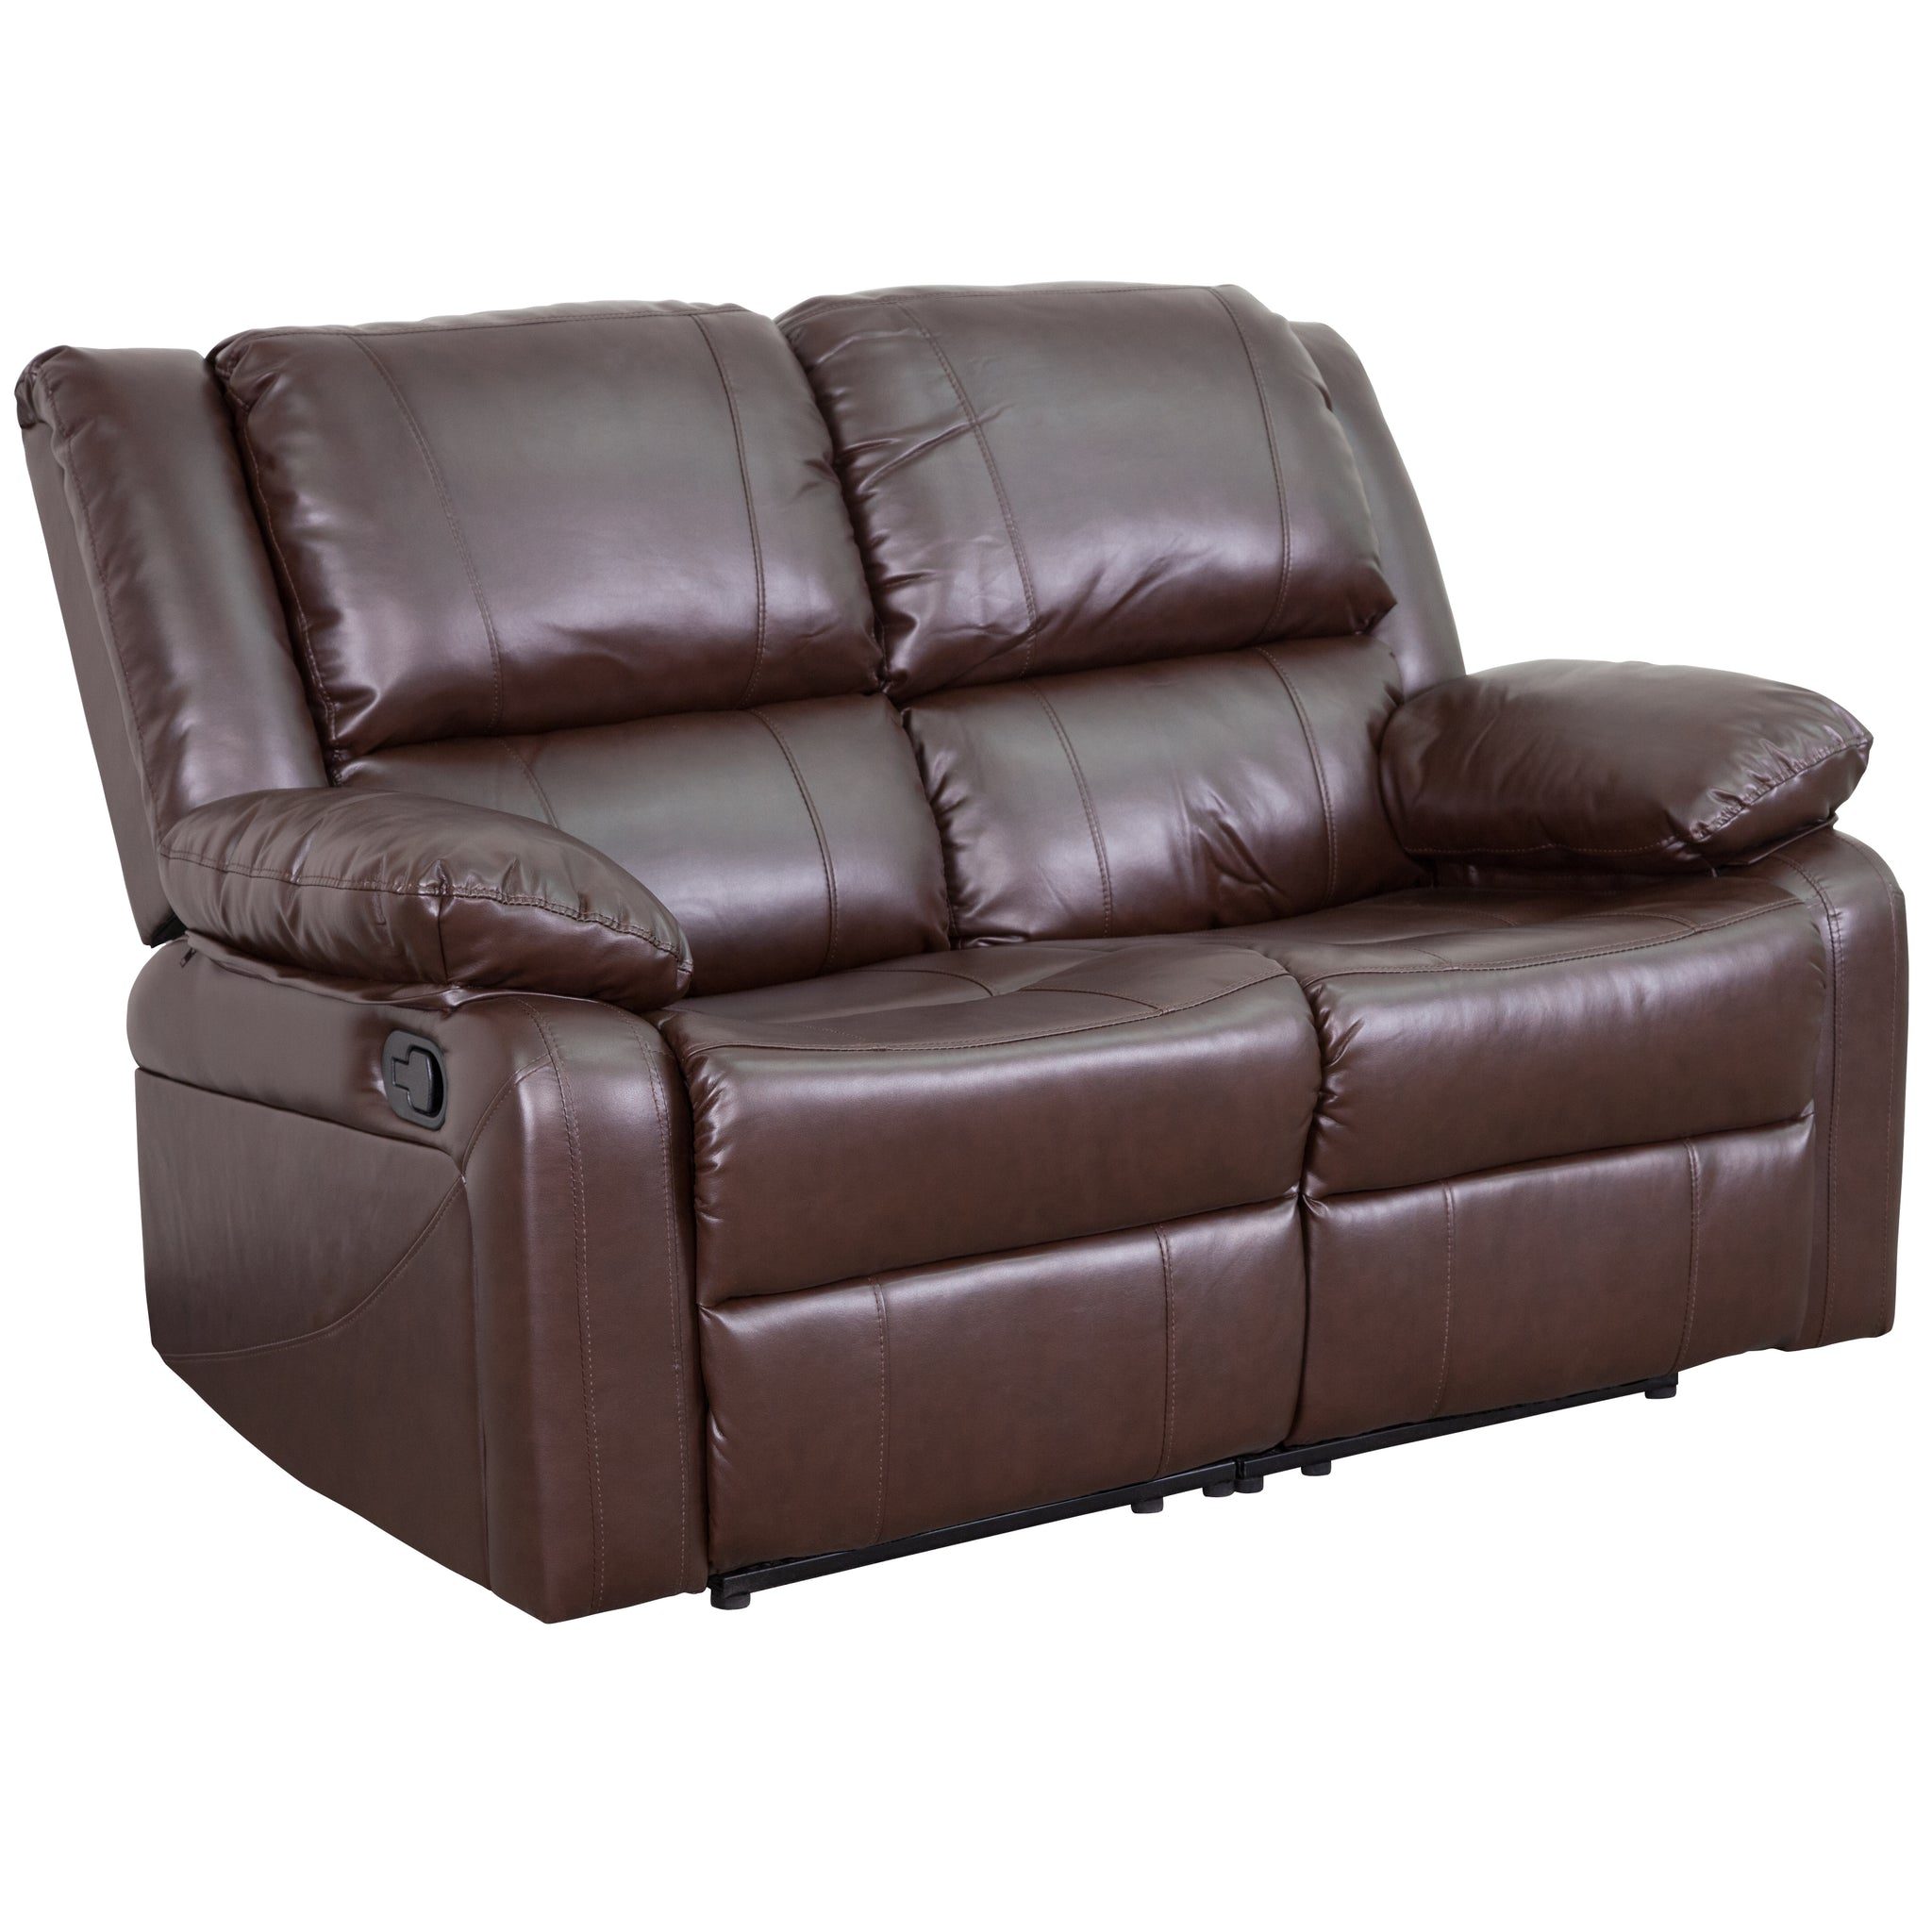 Harmony Series Loveseat with Two Built-In Recliners: Chocolate Brown Microfiber